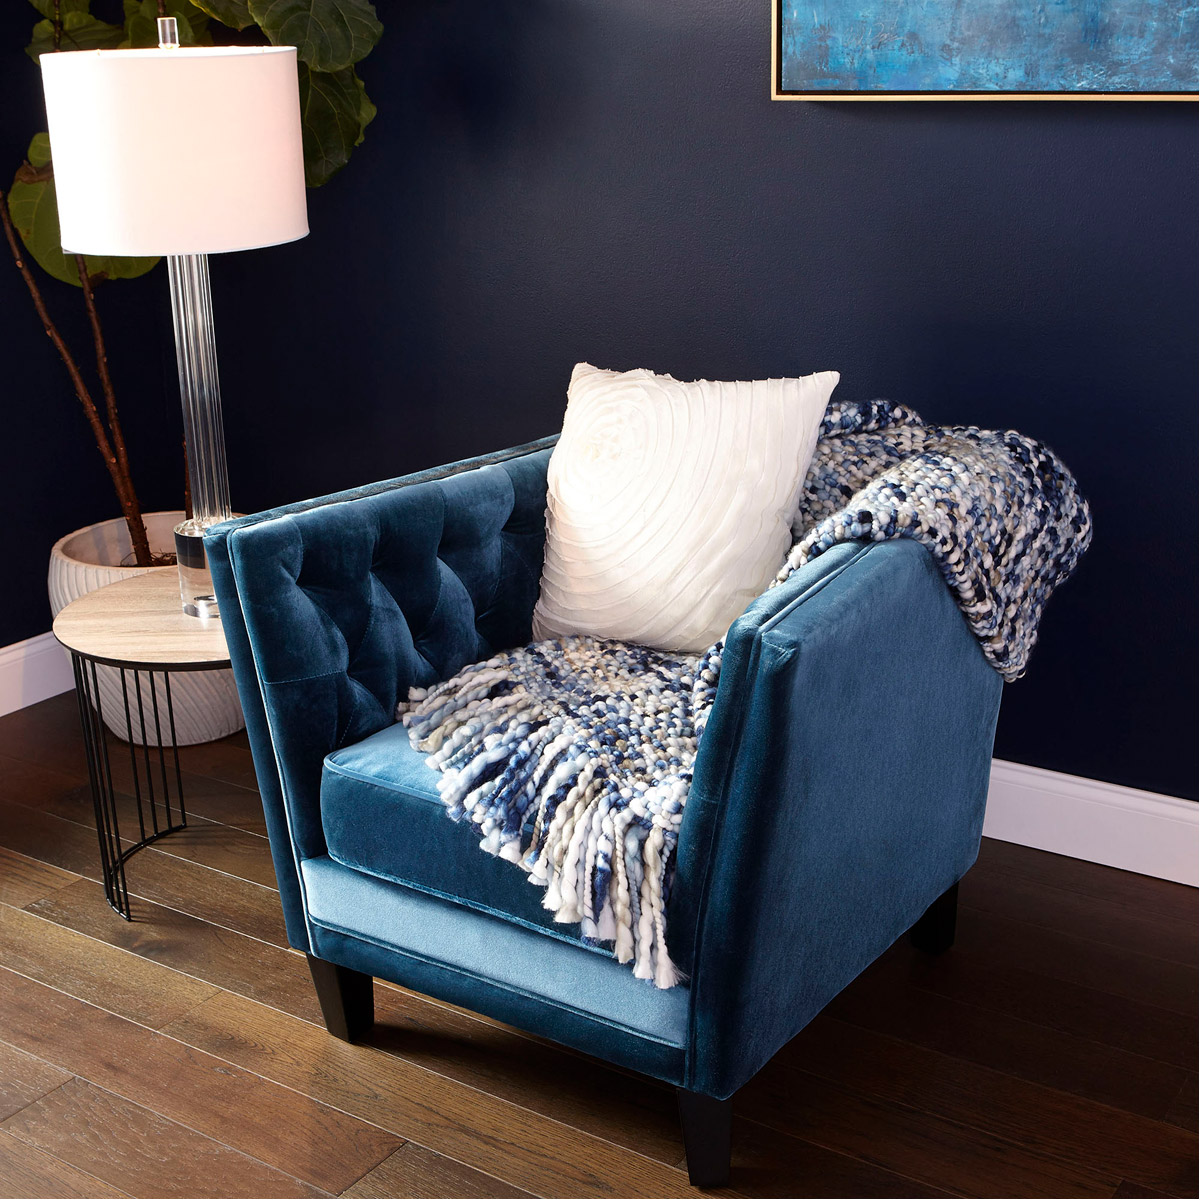 Awe Inspiring Details About Tufted Blue Velvet Comfy Chair Mid Century Modern Creativecarmelina Interior Chair Design Creativecarmelinacom